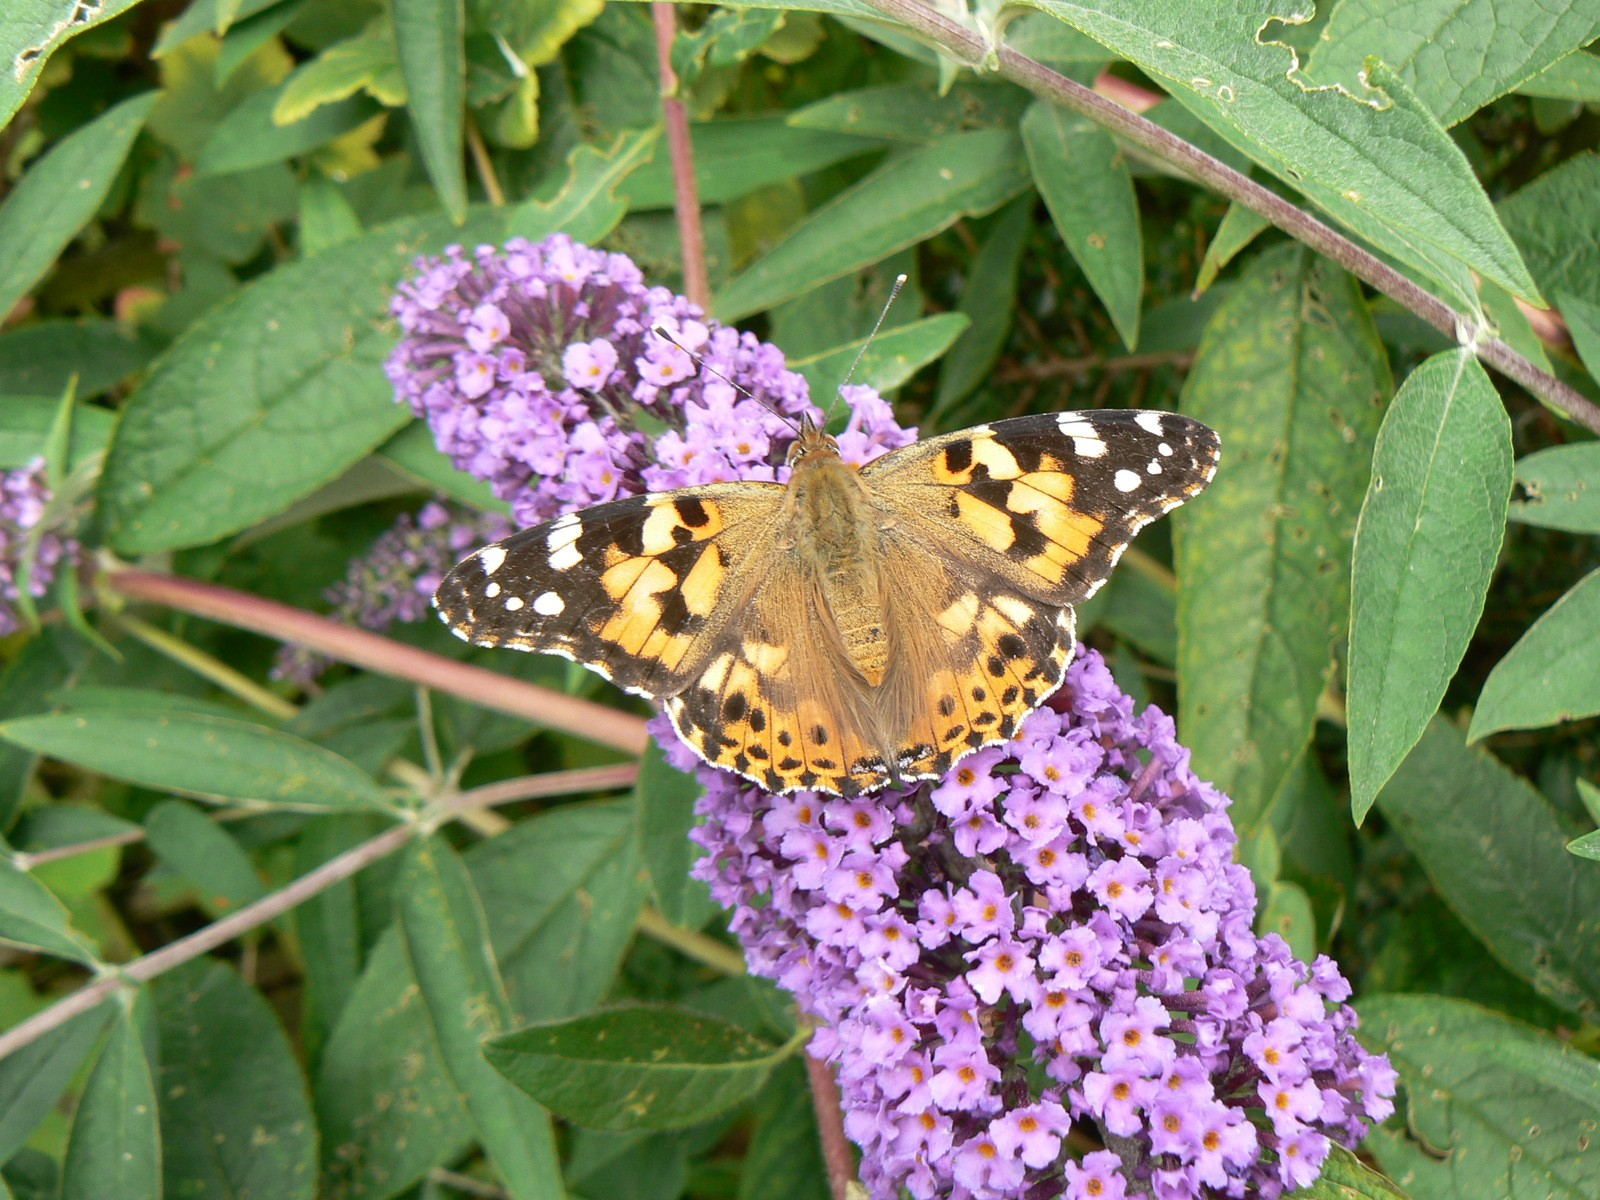 A Painted Lady Butterfly on a purple plant